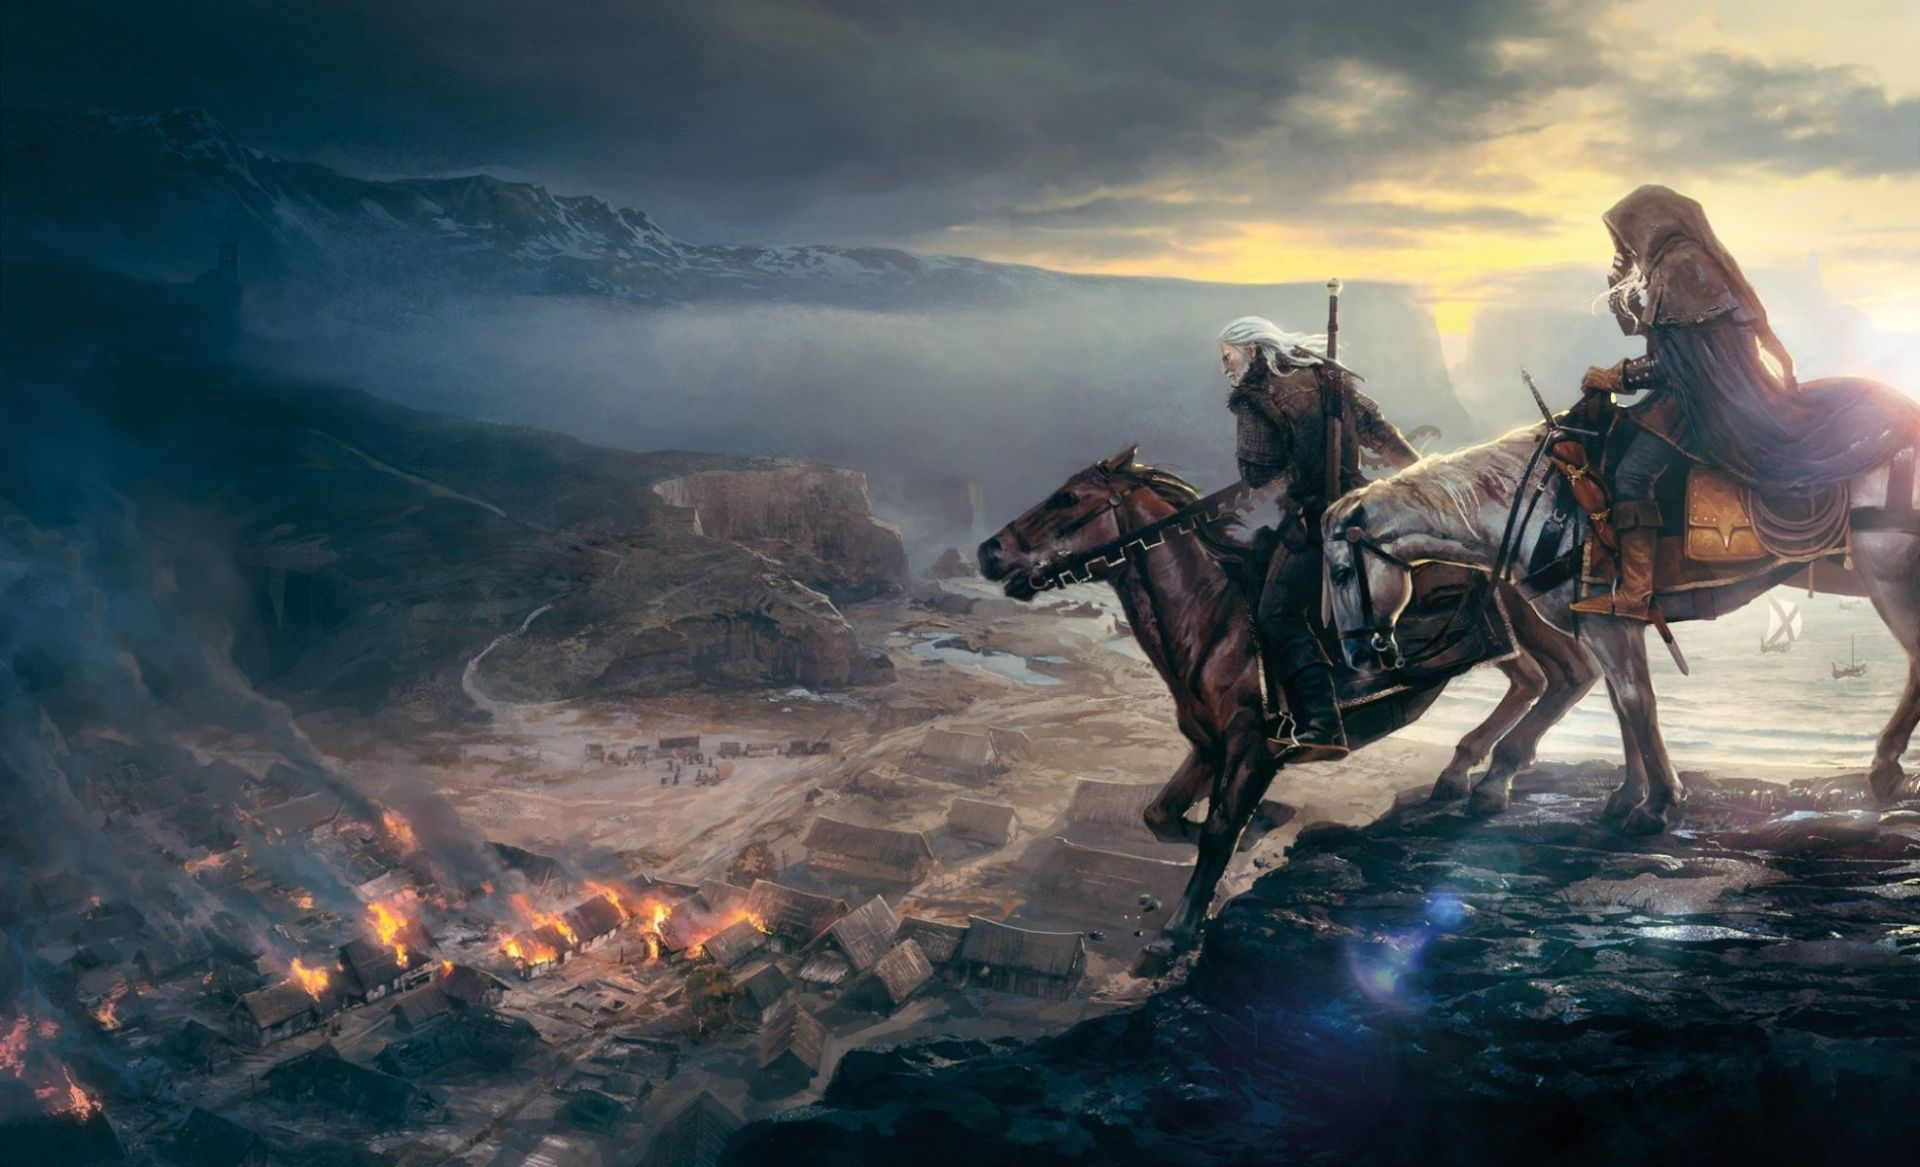 The Witcher, HD Wallpaper 1080